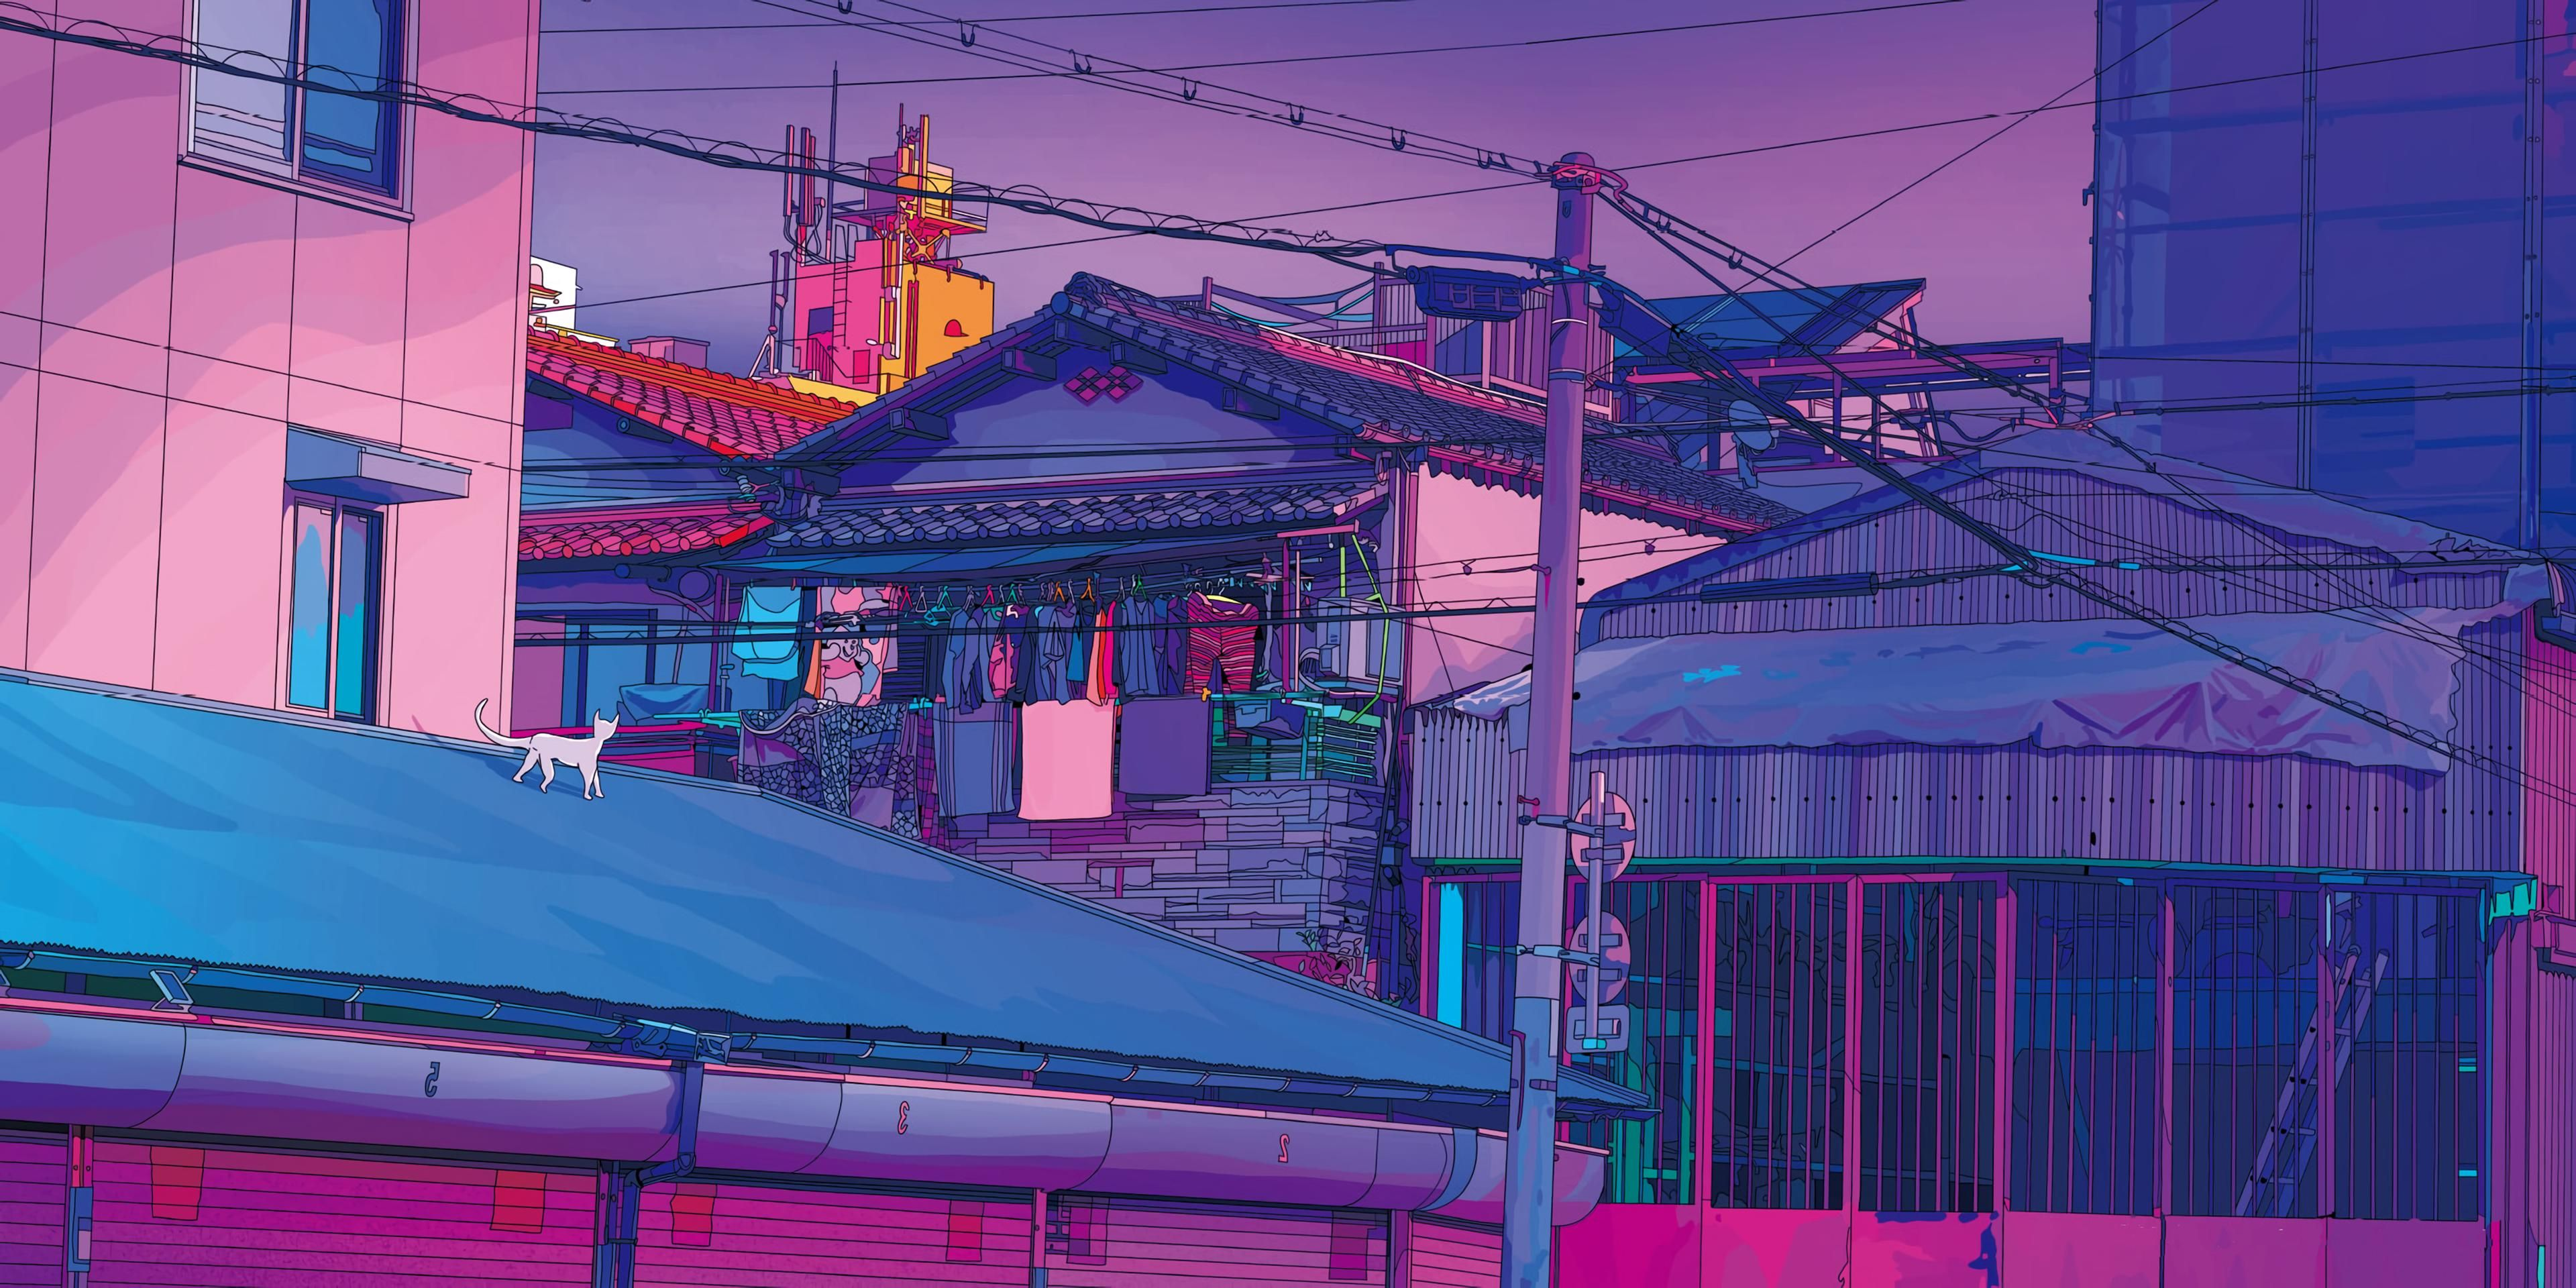 Aesthetic Tokyo In 2020 Computer Wallpaper Desktop Wallpapers Aesthetic Desktop Wallpaper Desktop Wallpaper Art